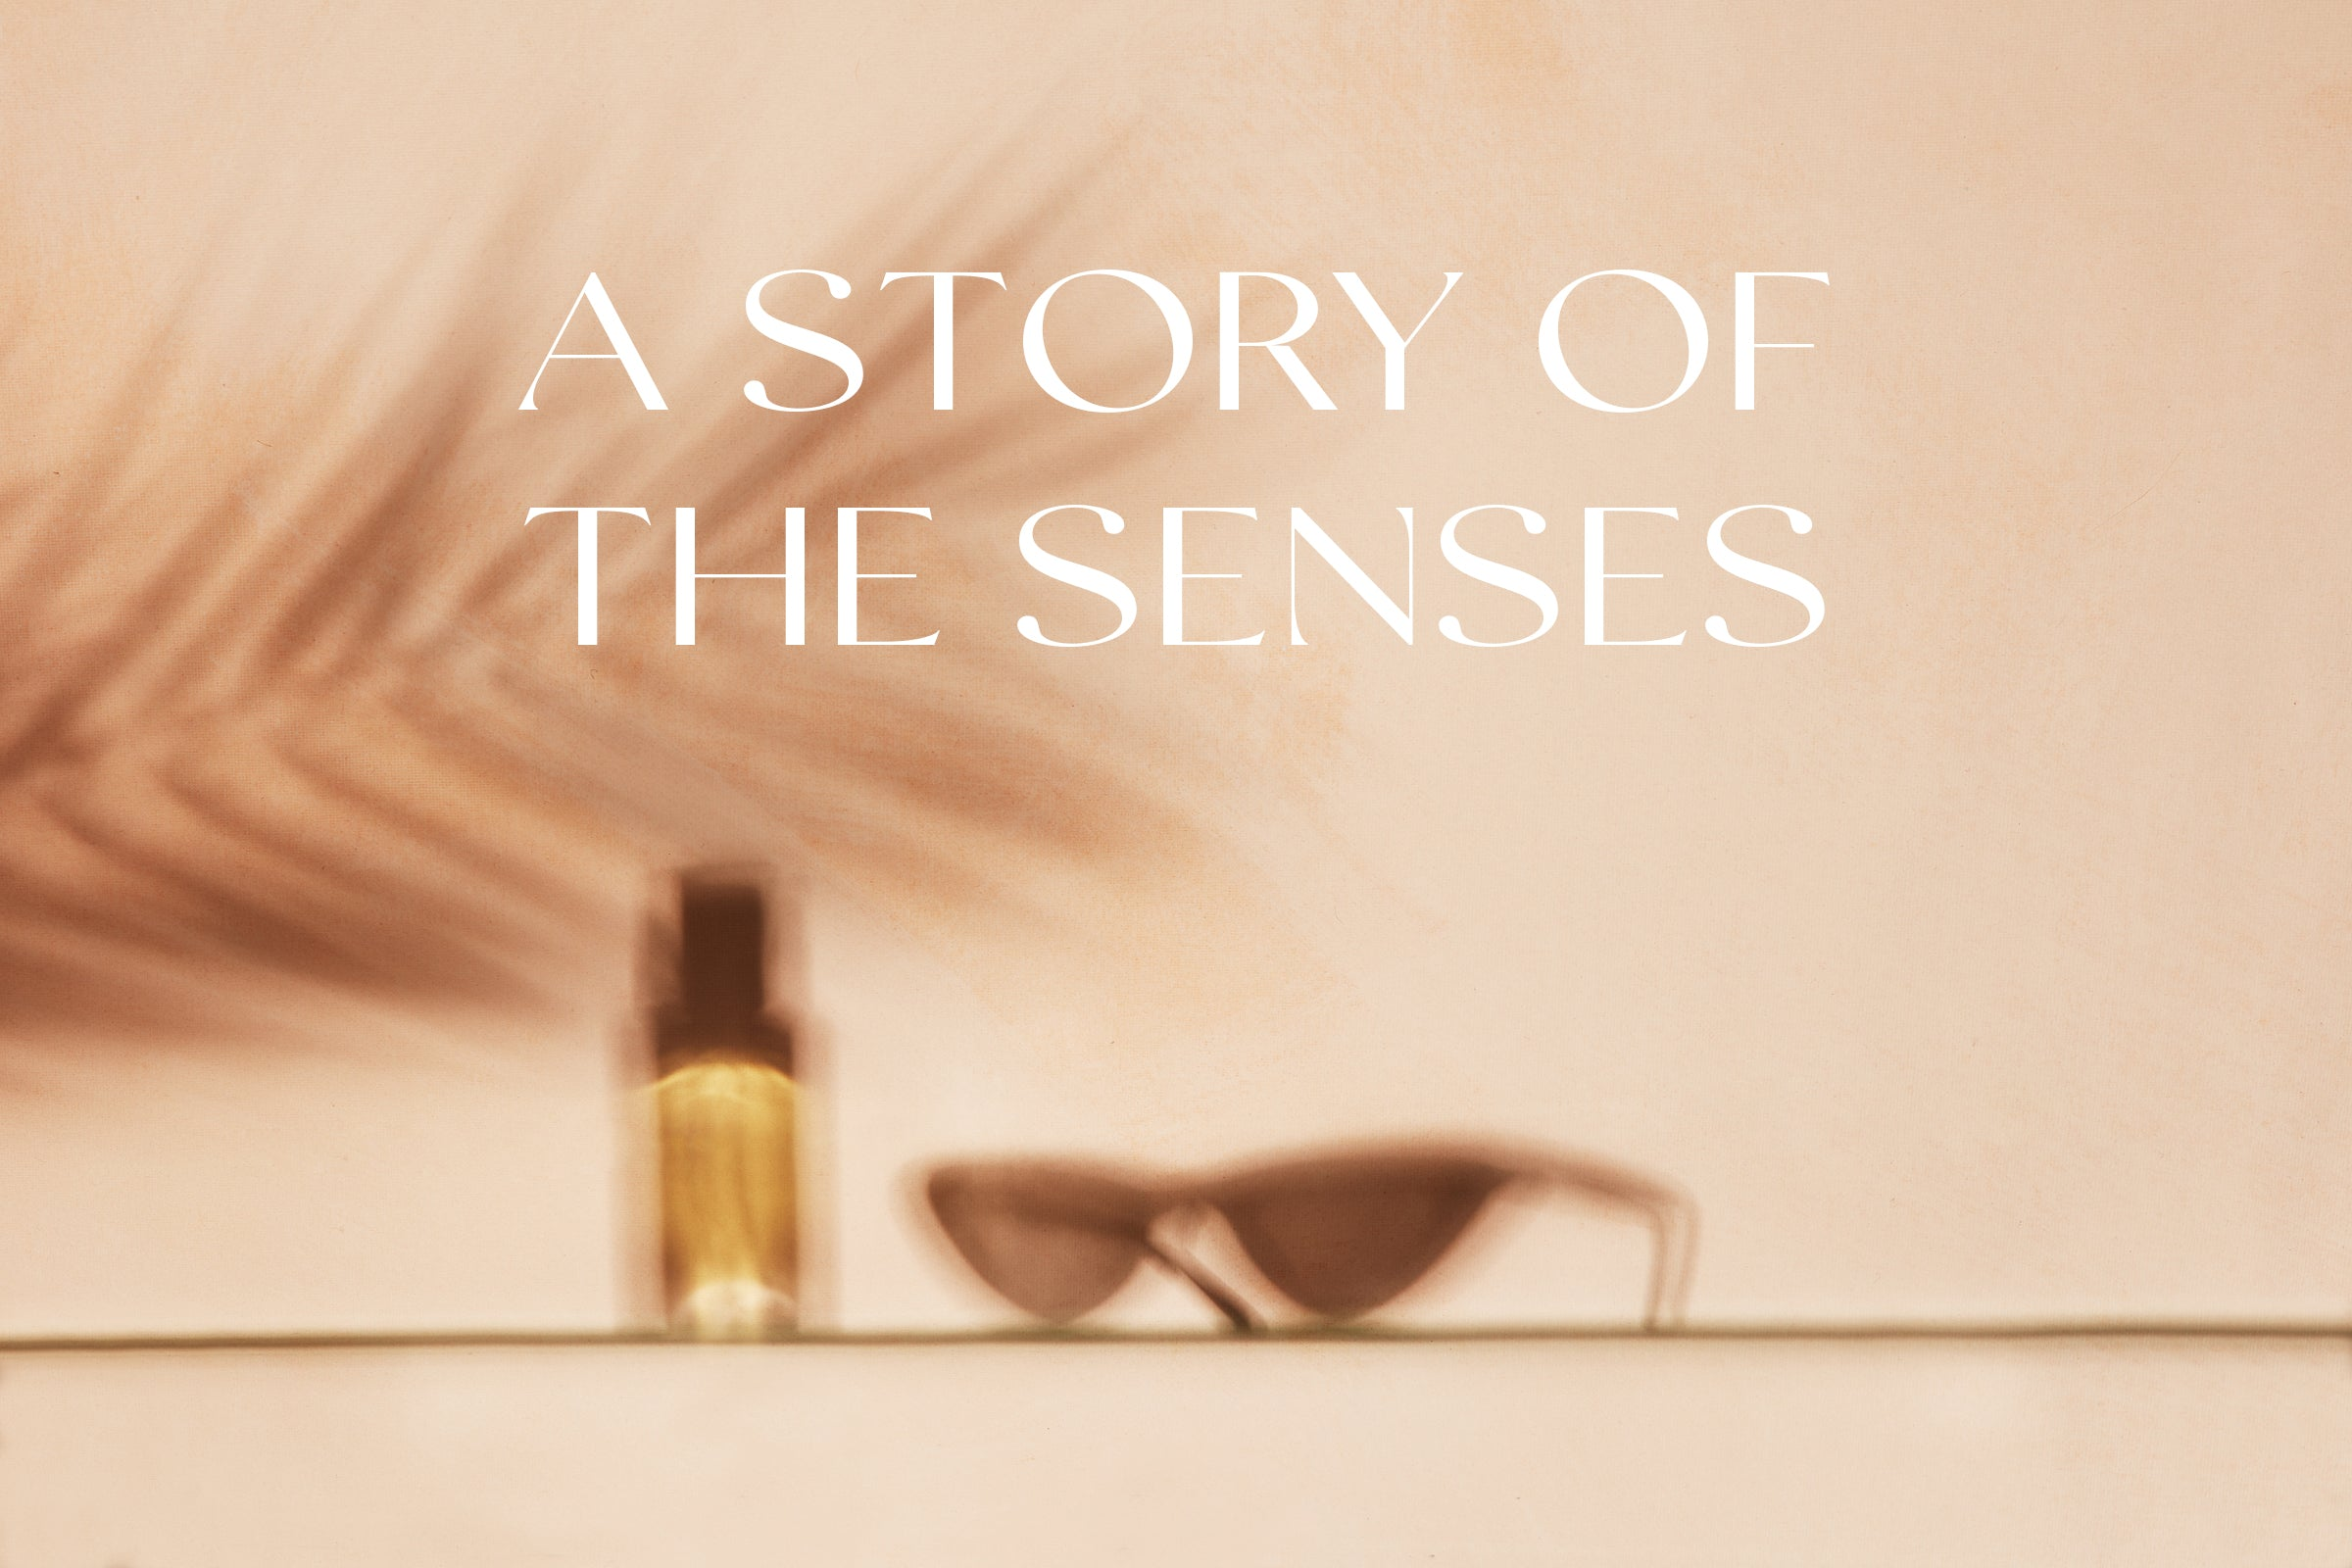 A STORY OF THE SENSES